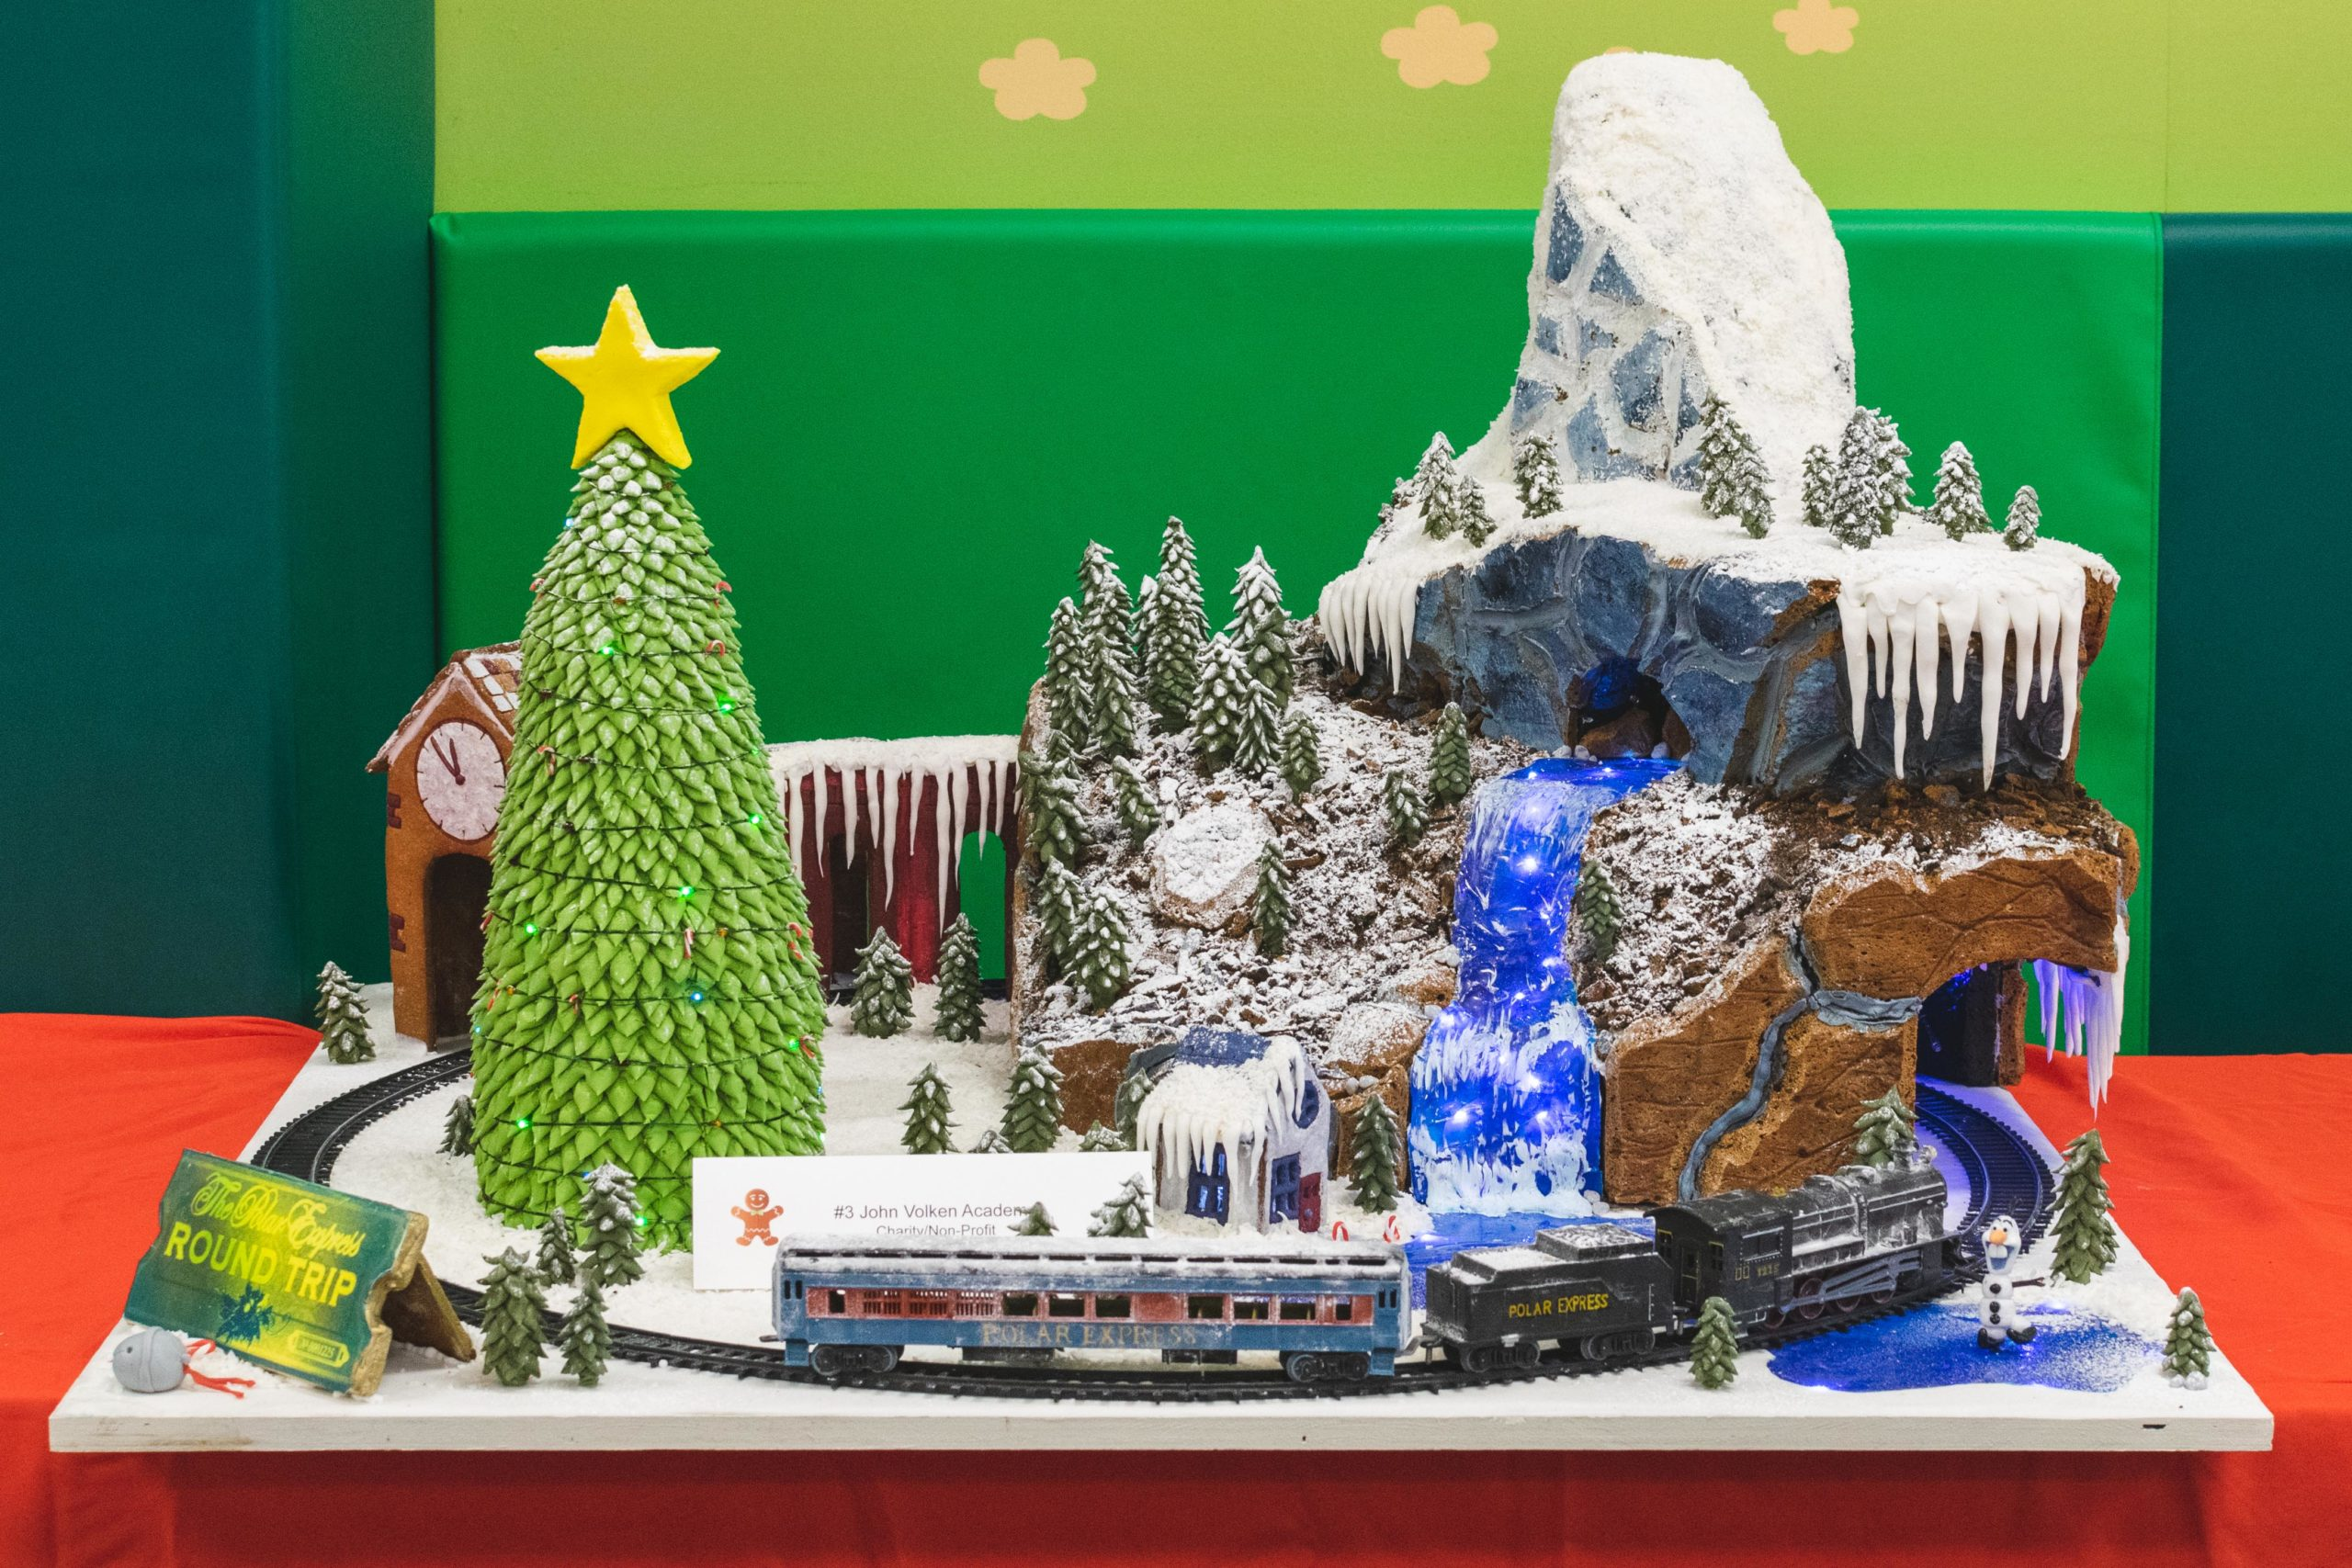 Check out these crazy impressive gingerbread displays at Central City Shopping Centre!